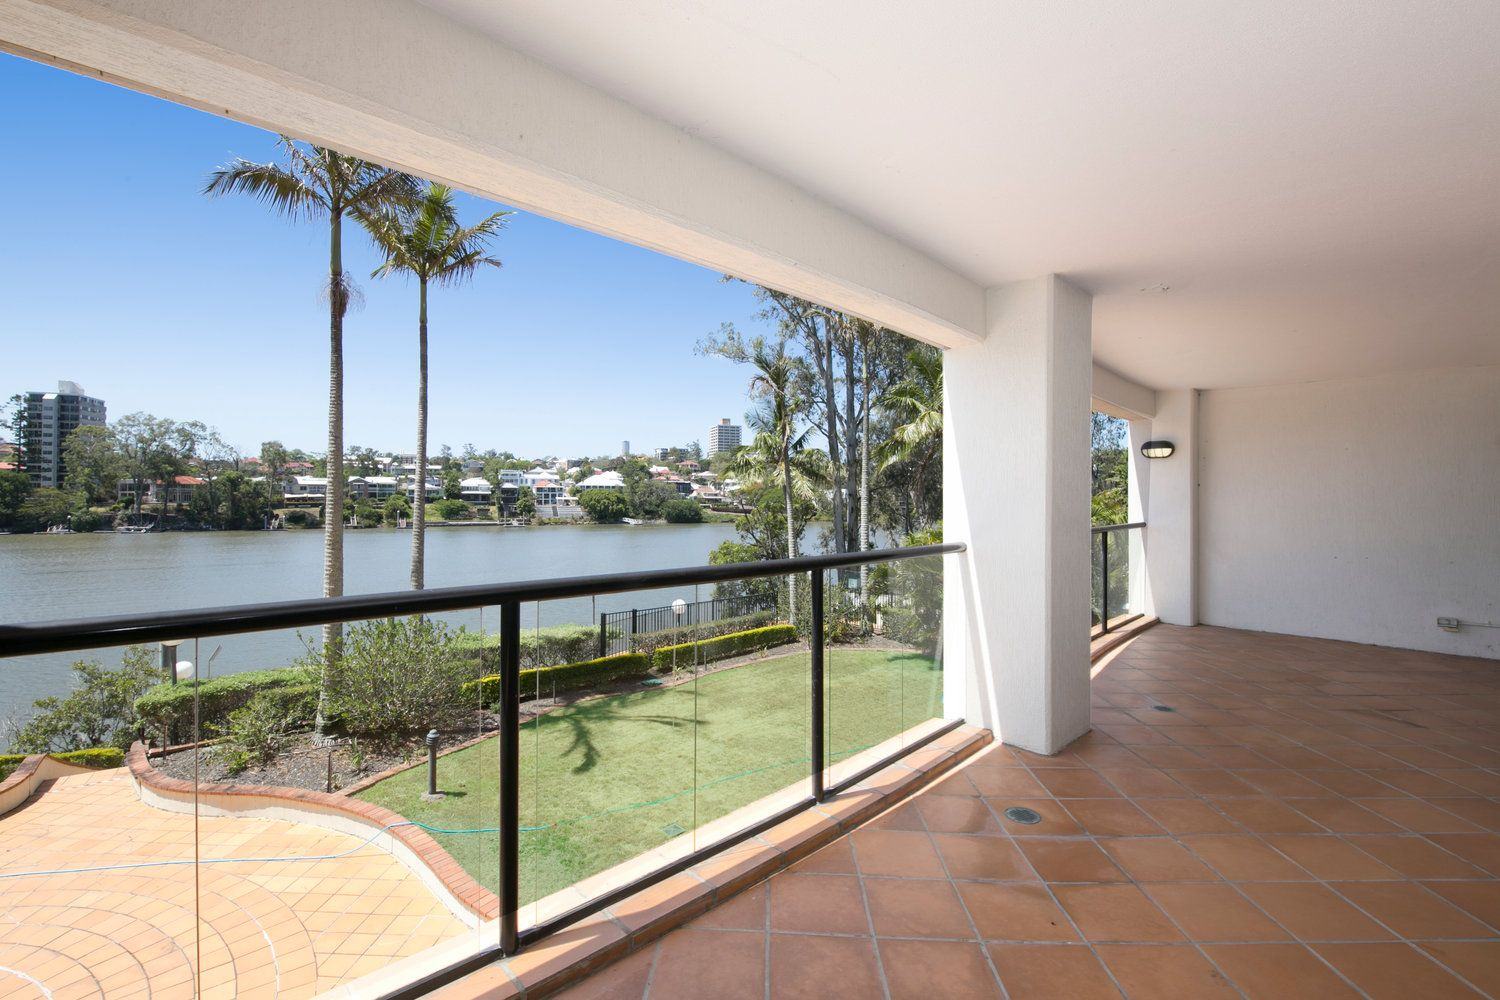 2/172 Macquarie Street, St Lucia QLD 4067, Image 2